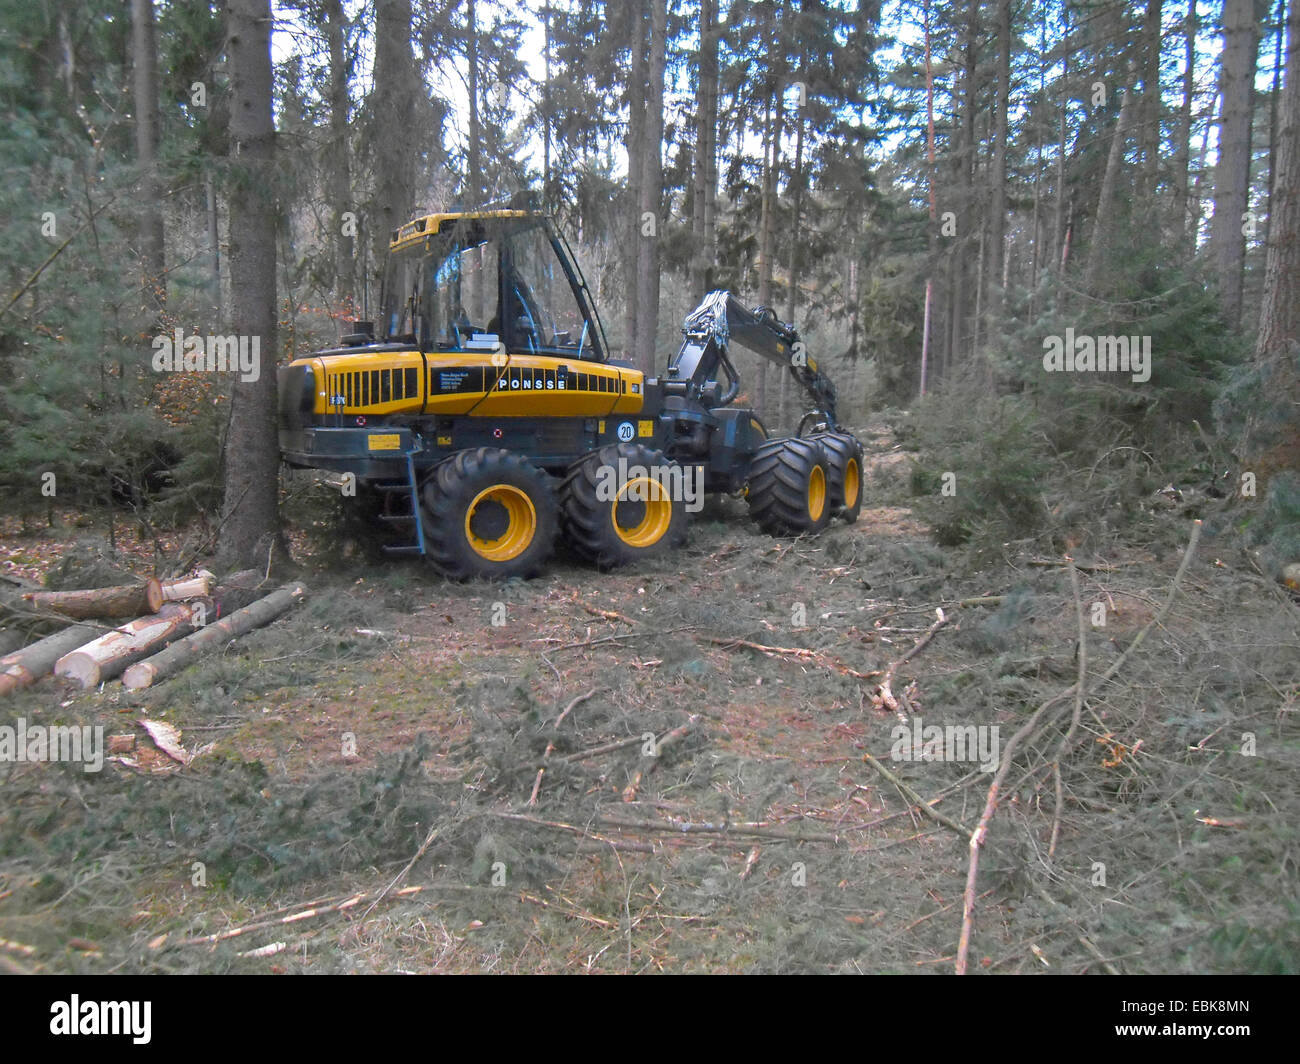 harverster machine in a conifer forest, Germany, Lower Saxony Stock Photo